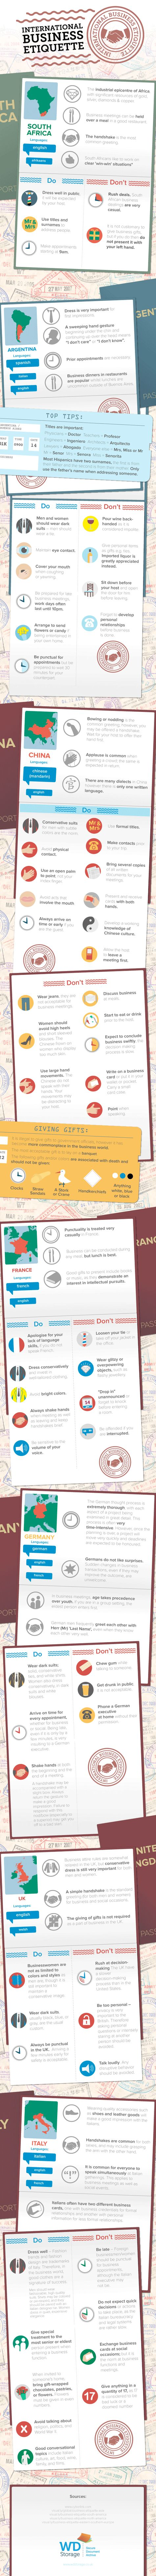 A Visual Guide to International Business Etiquette [Infographic]